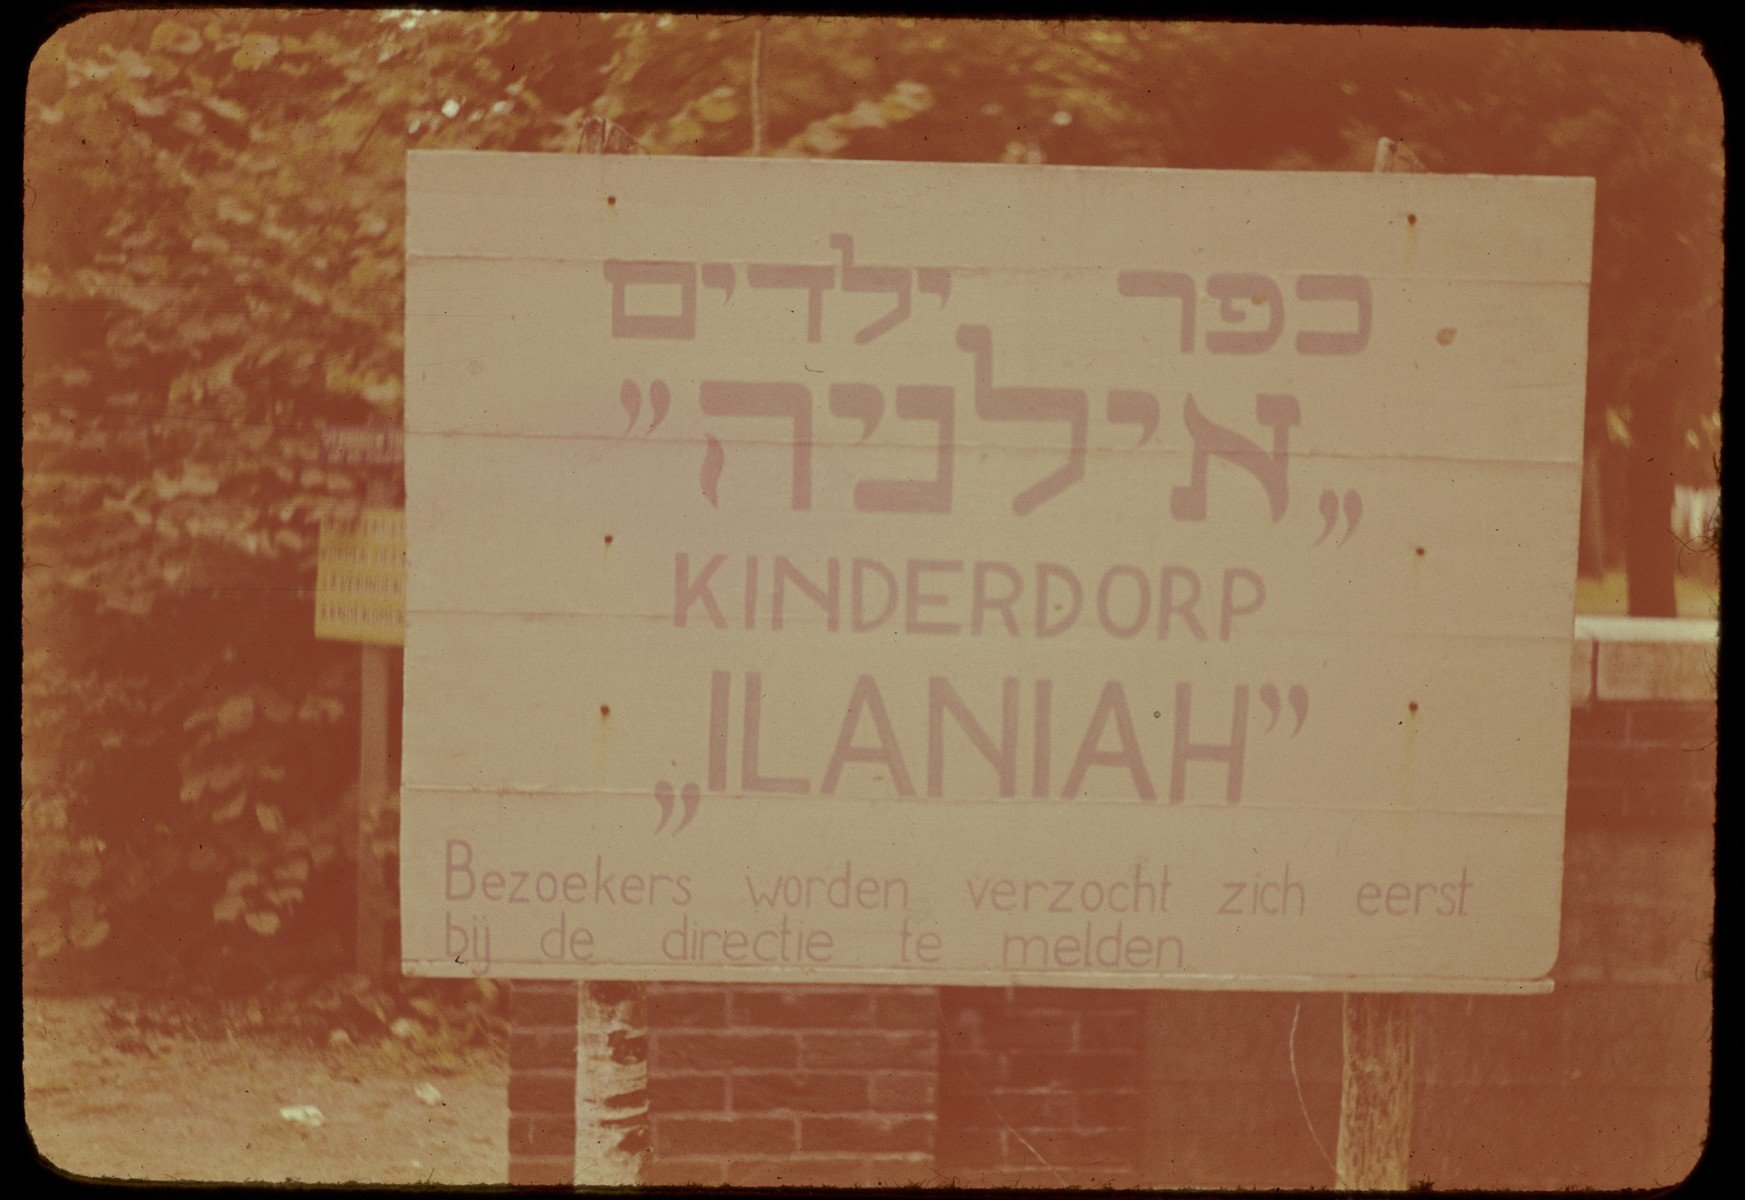 Sign in both Hebrew and Dutch at the entrance to the Kibbutz Ilaniah children's home in Apeldoorn.